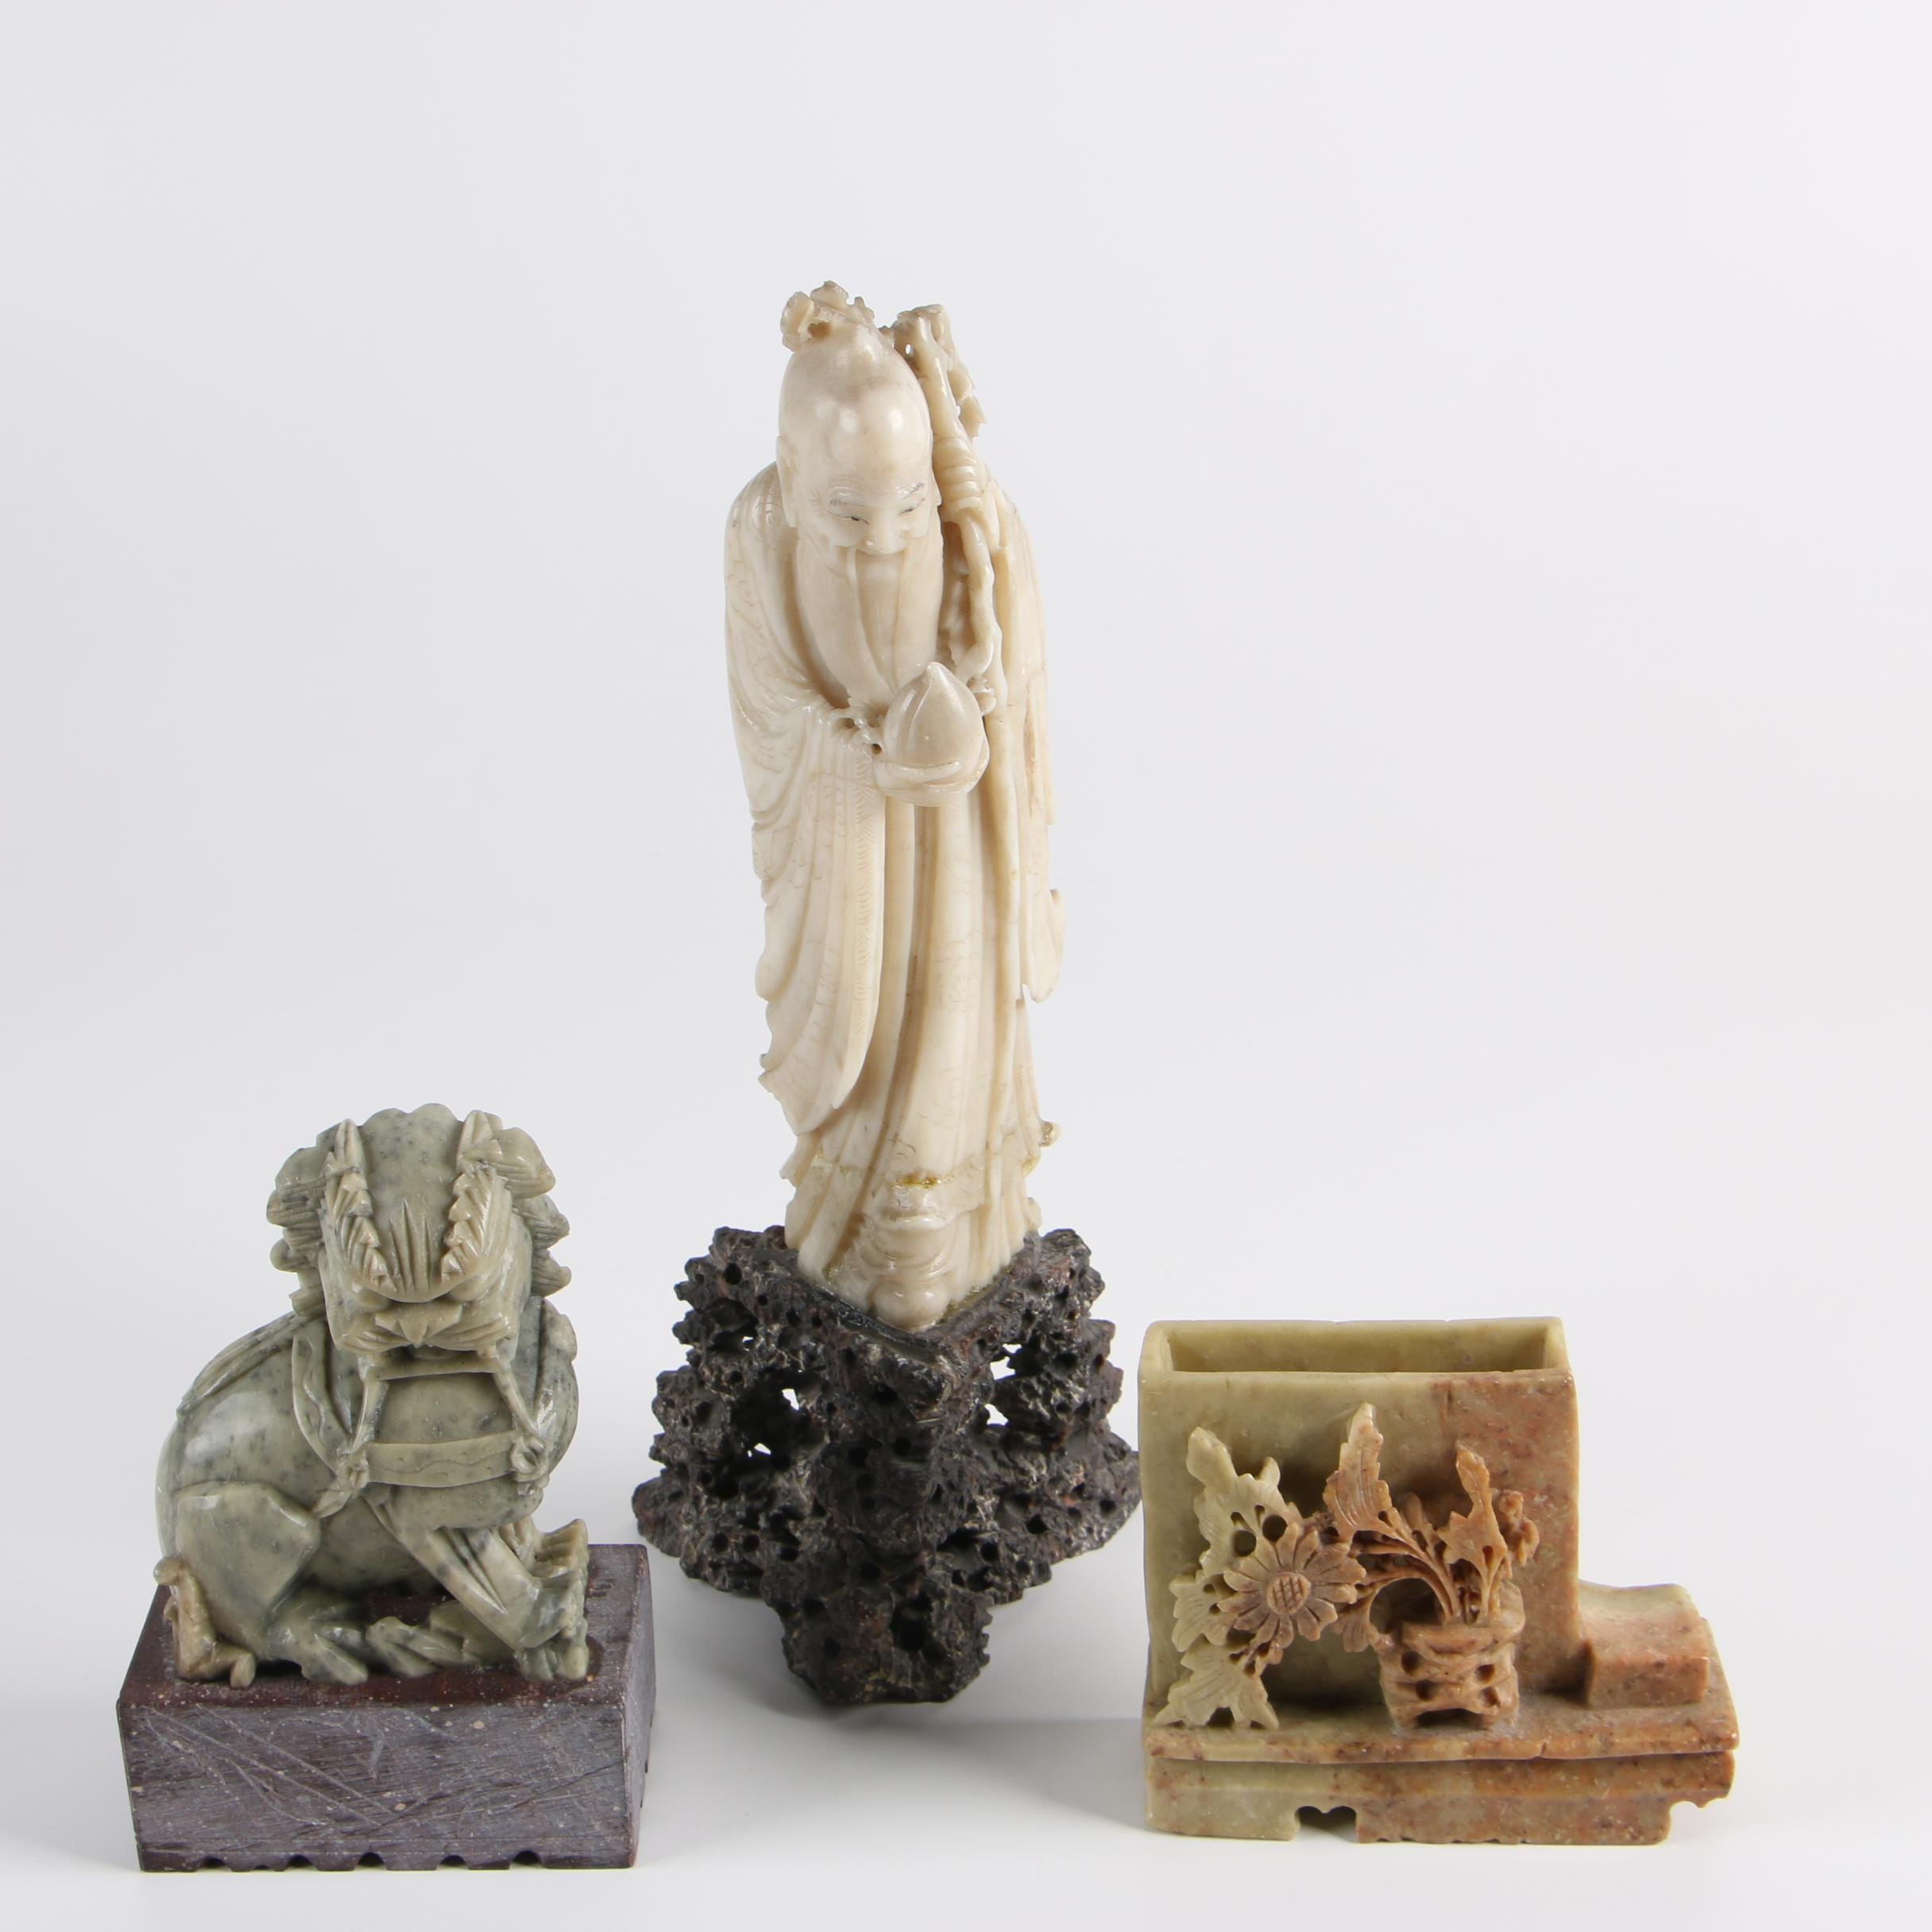 Chinese Soapstone Guardian Lion and God of Longevity Figurines with Inkwell